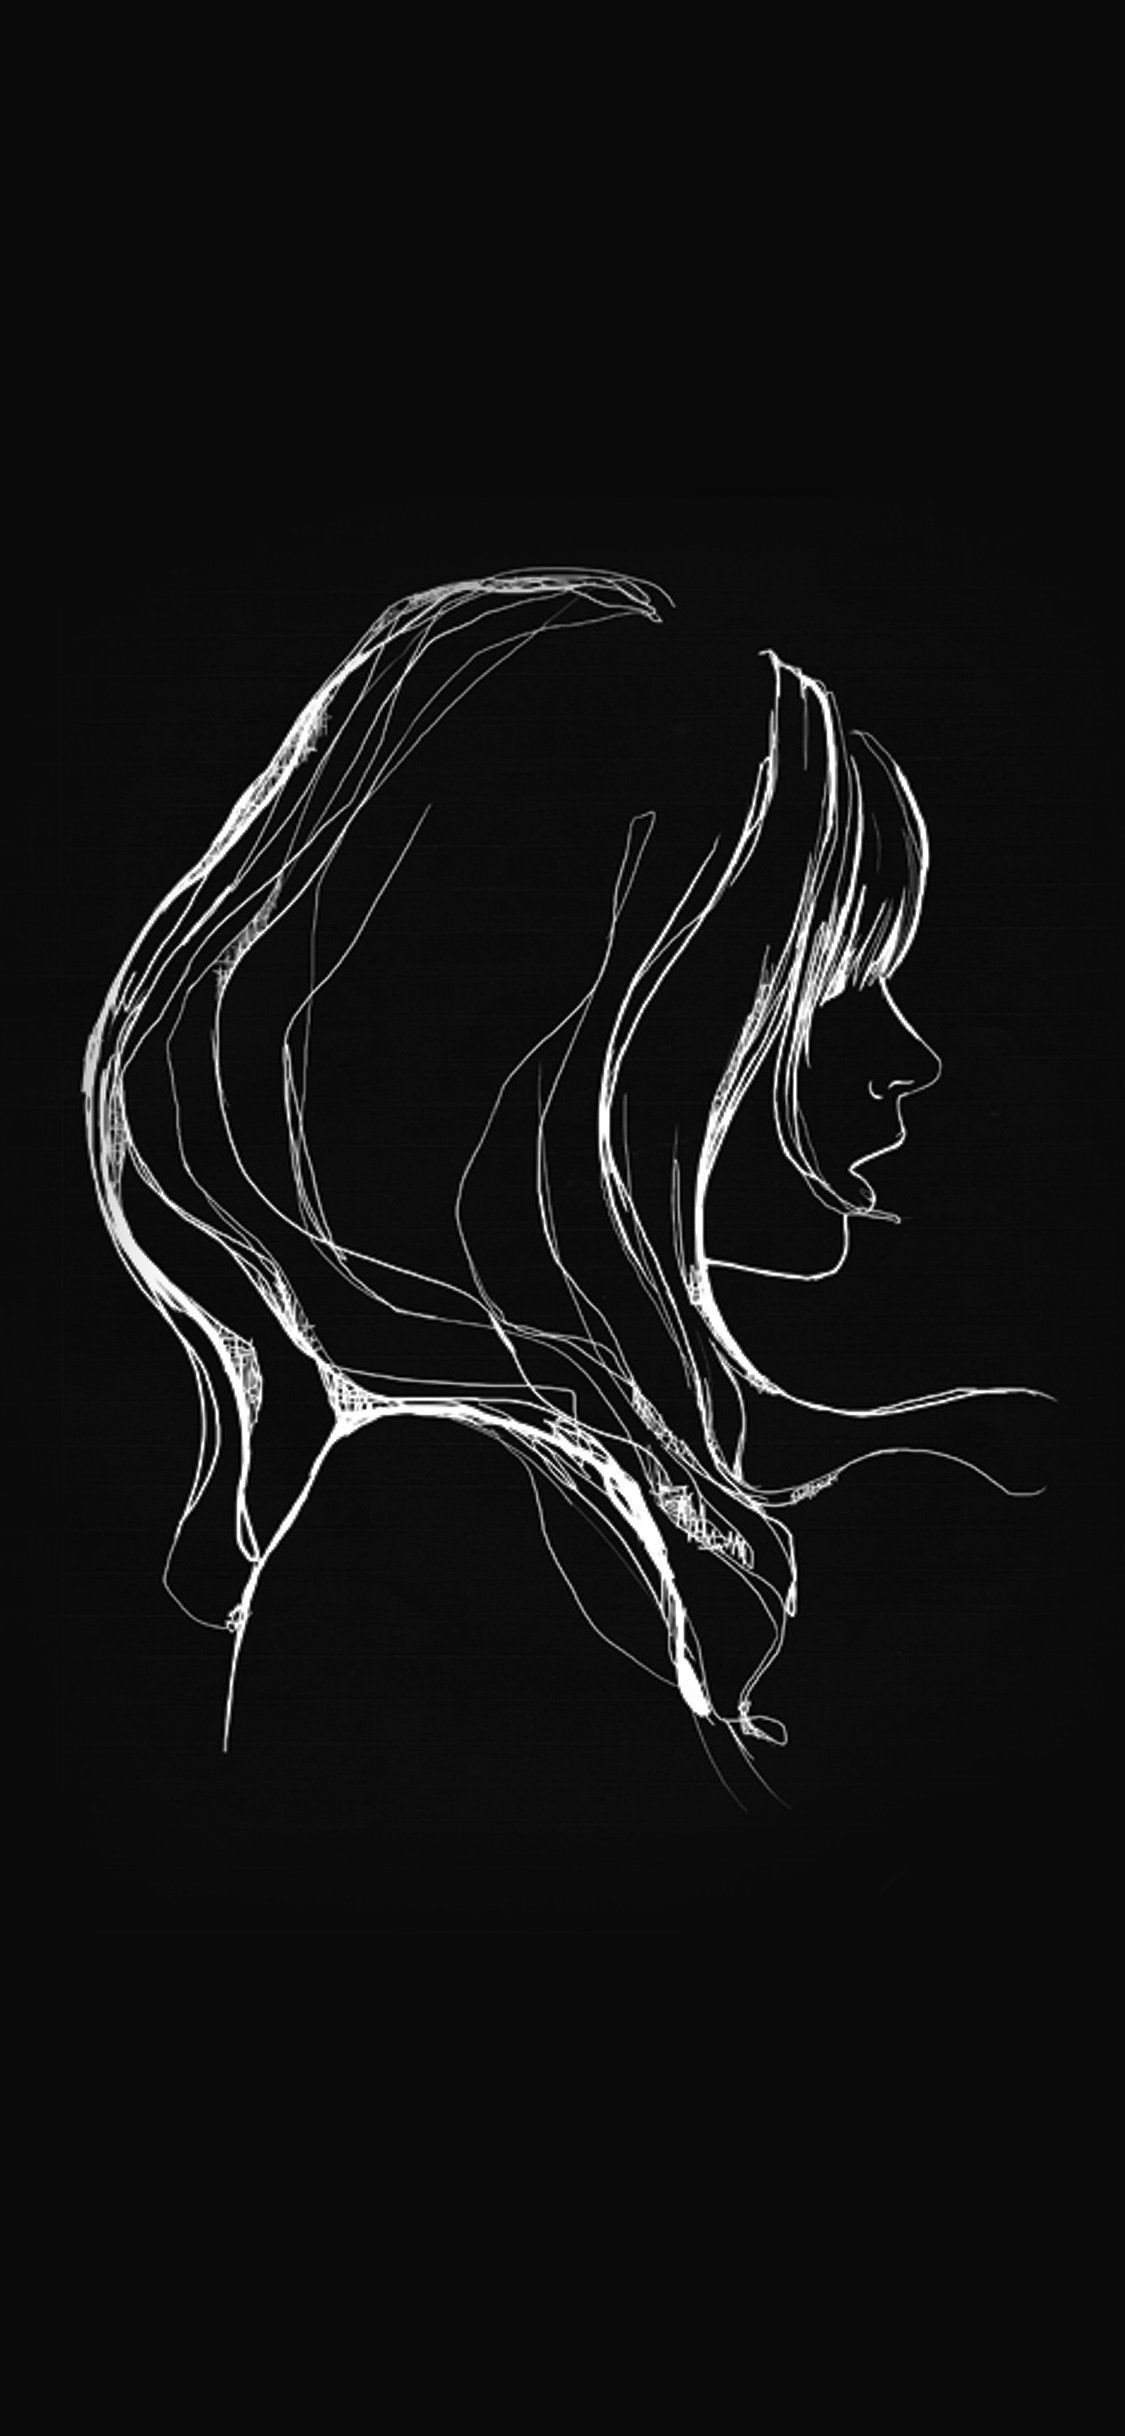 Black Drawing Wallpapers   Top Black Drawing Backgrounds 1125x2436